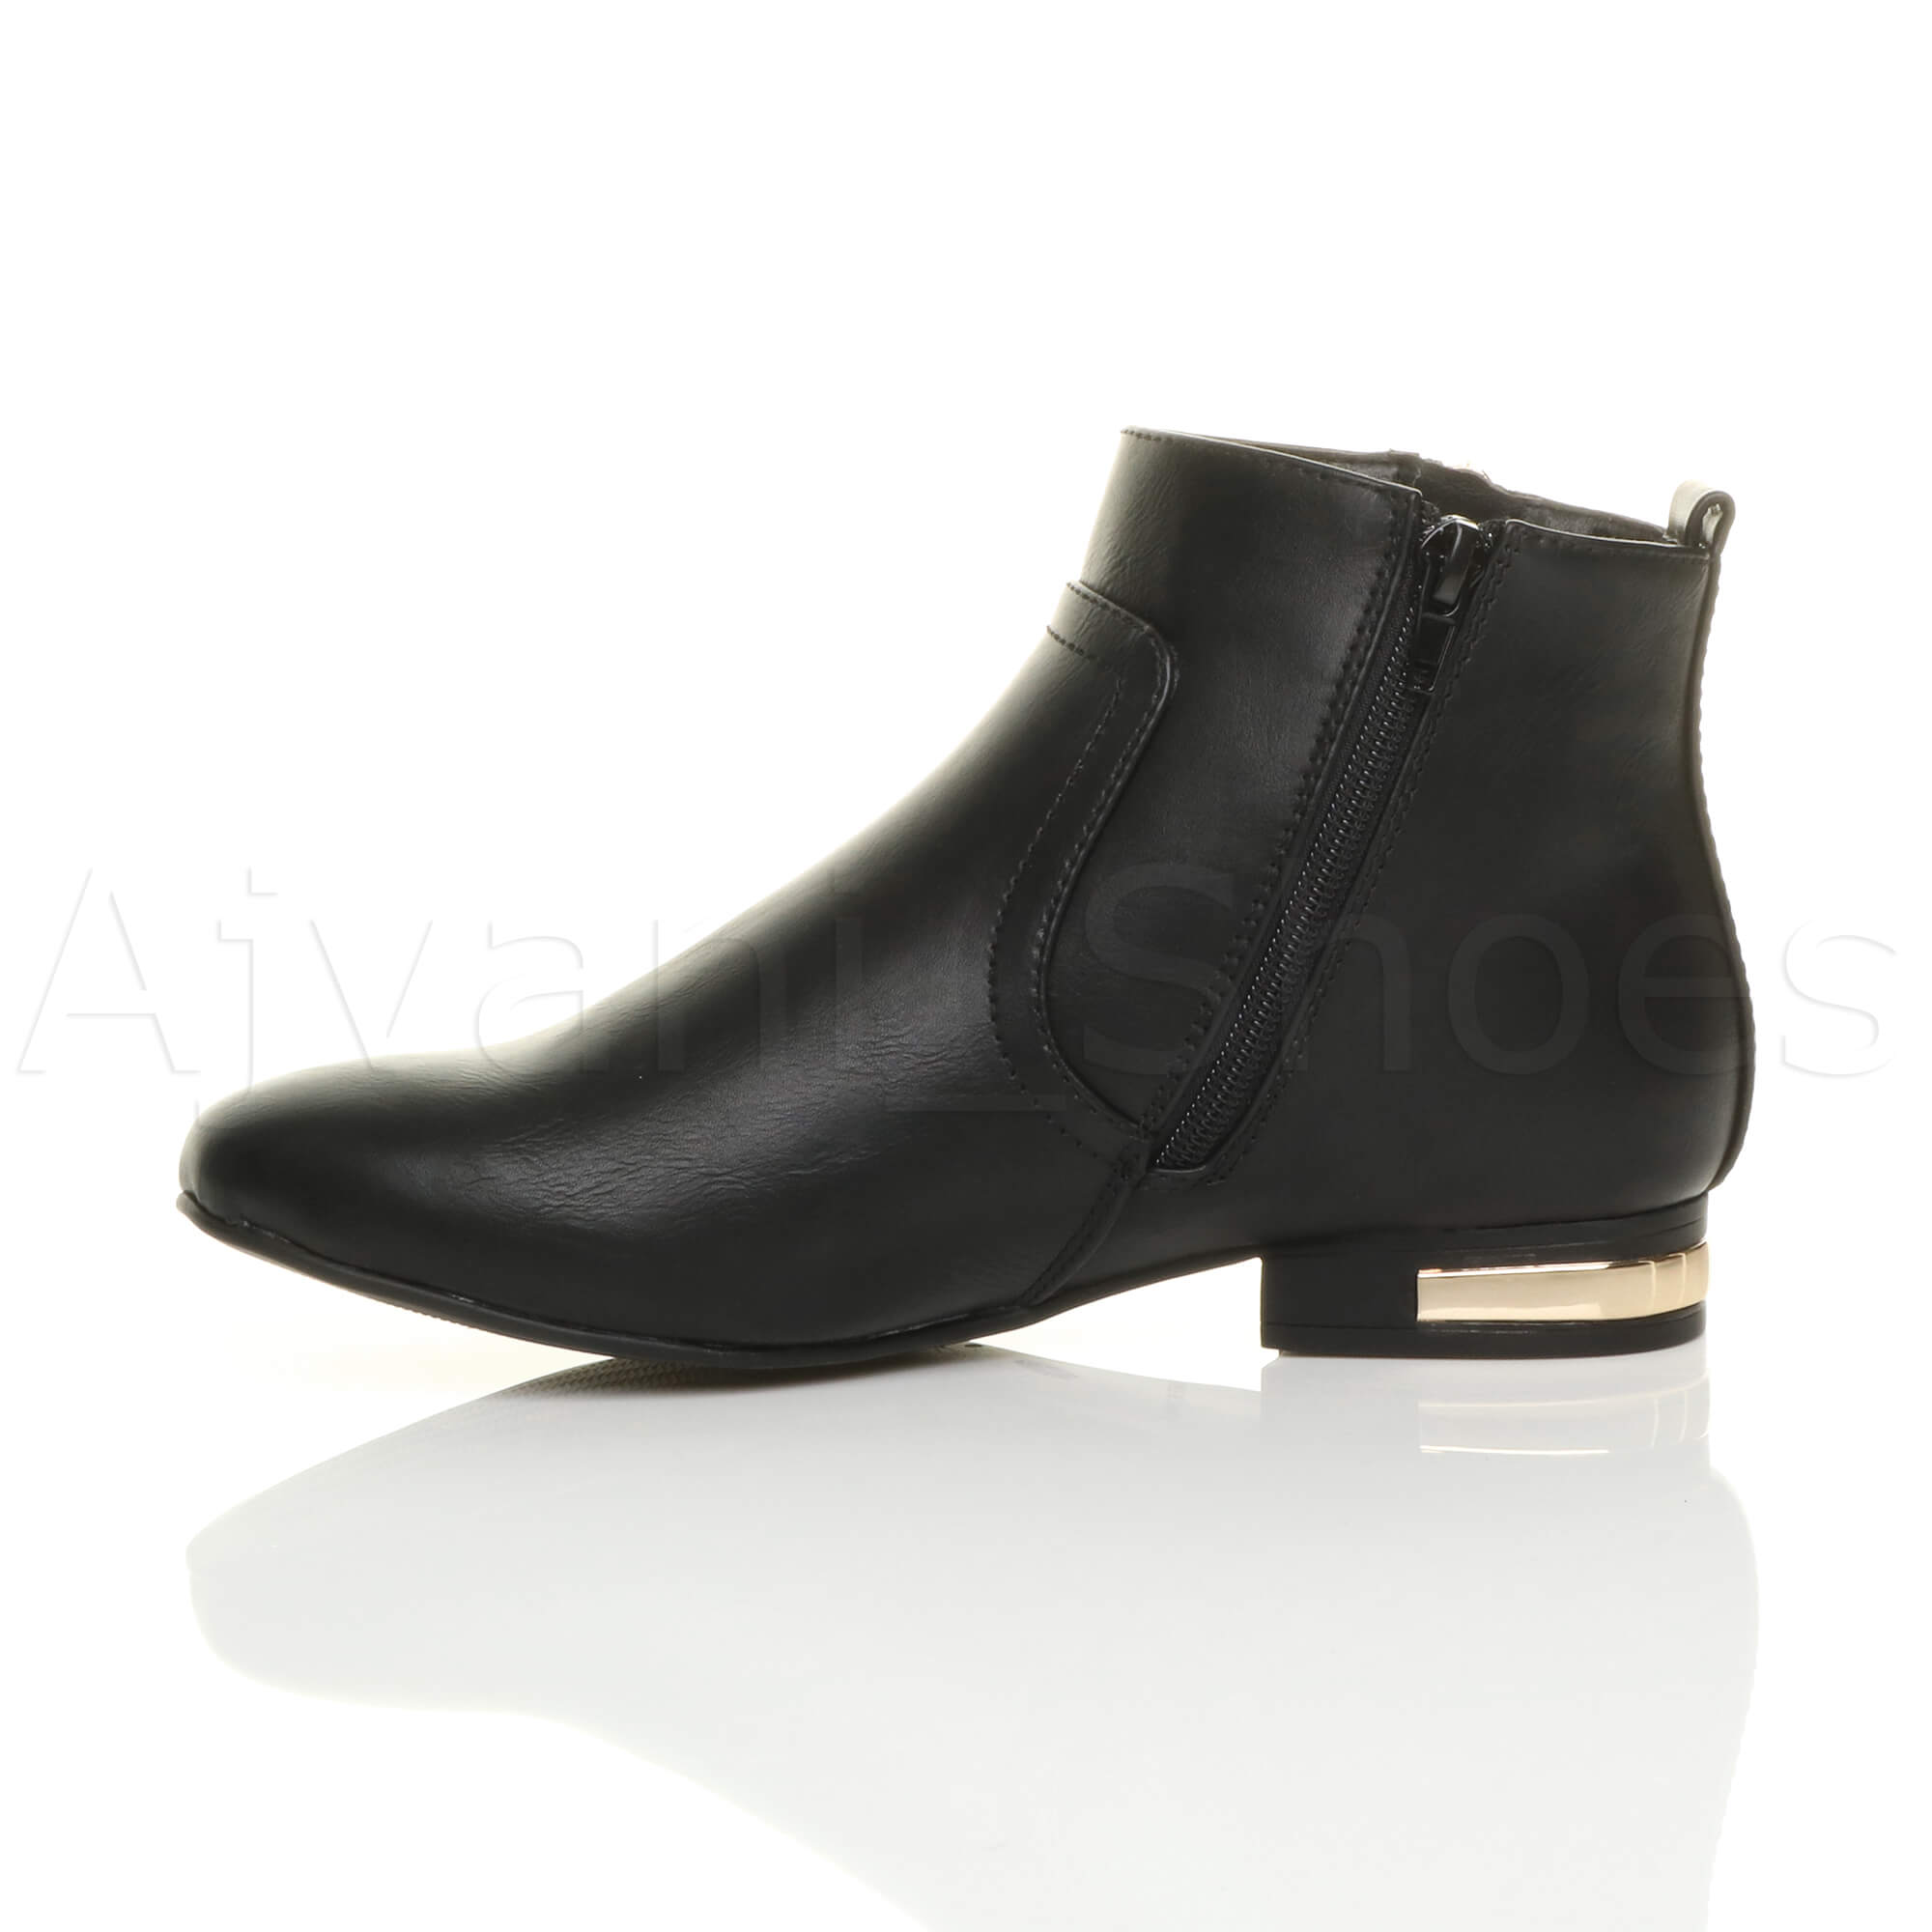 WOMENS-LADIES-LOW-HEEL-GOLD-ZIP-CONTRAST-RIDING-PIXIE-ANKLE-BOOTS-BOOTIES-SIZE thumbnail 4